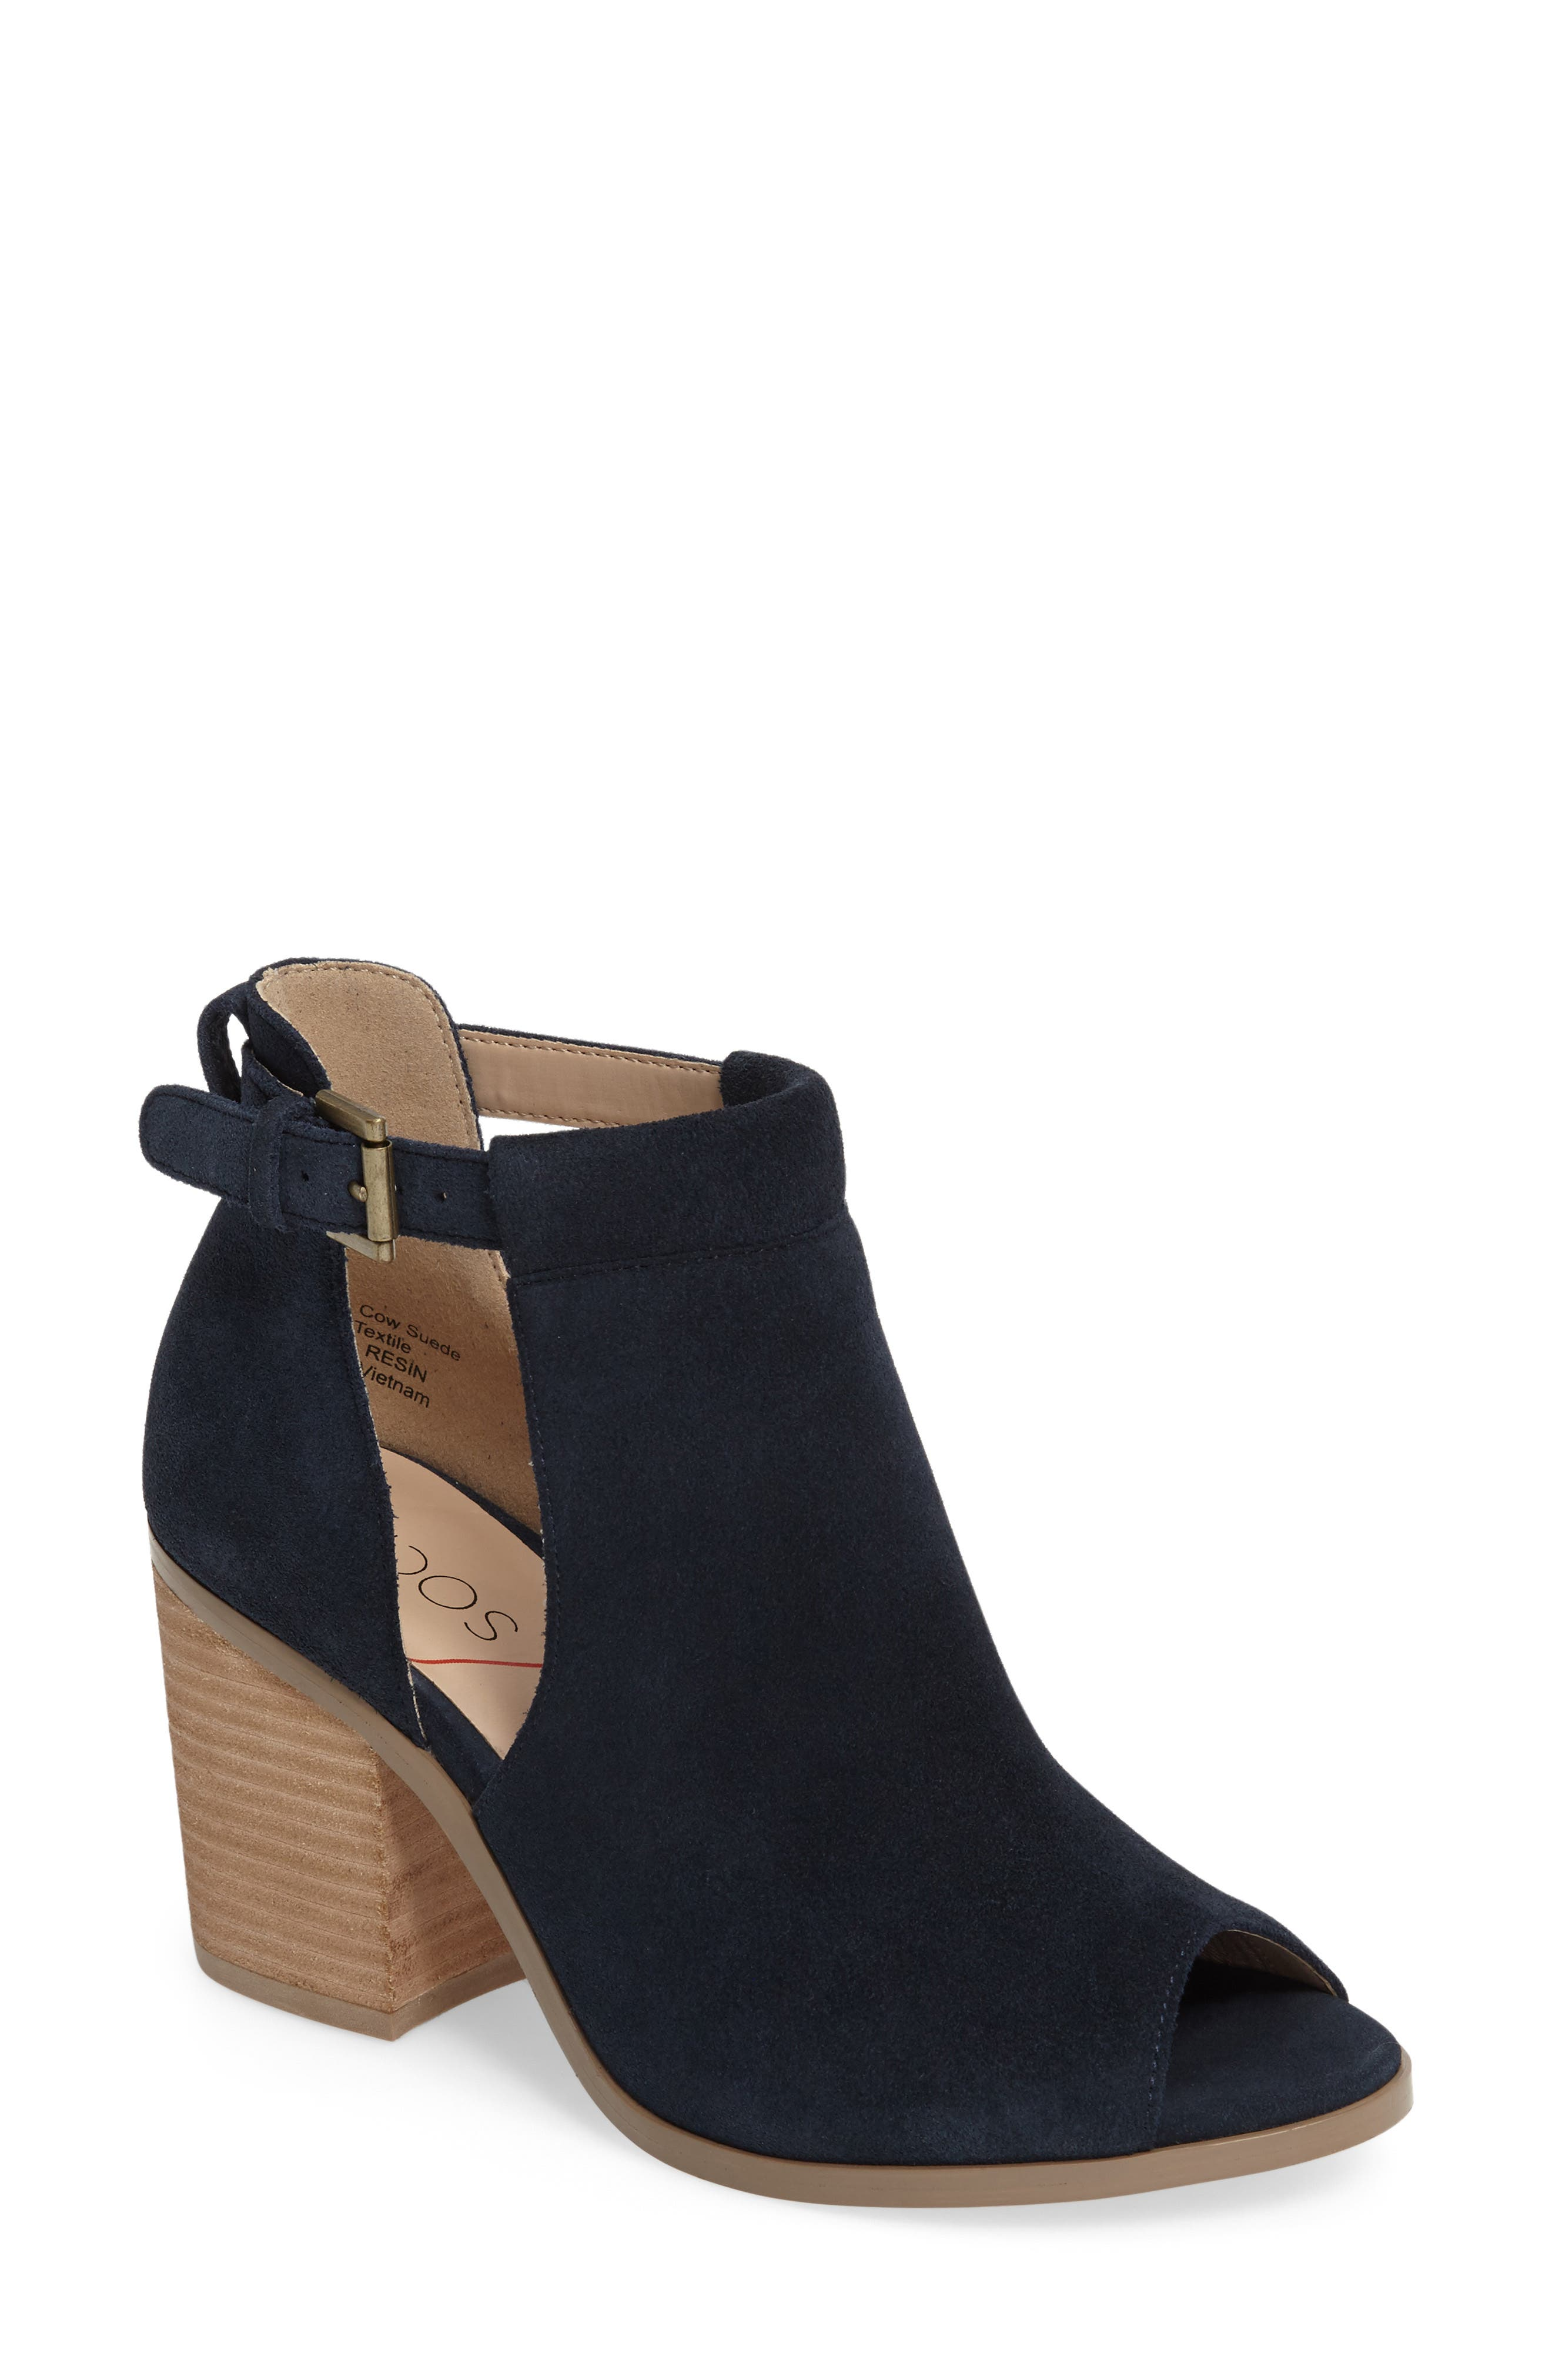 SOLE SOCIETY, 'Ferris' Open Toe Bootie, Main thumbnail 1, color, INK SUEDE